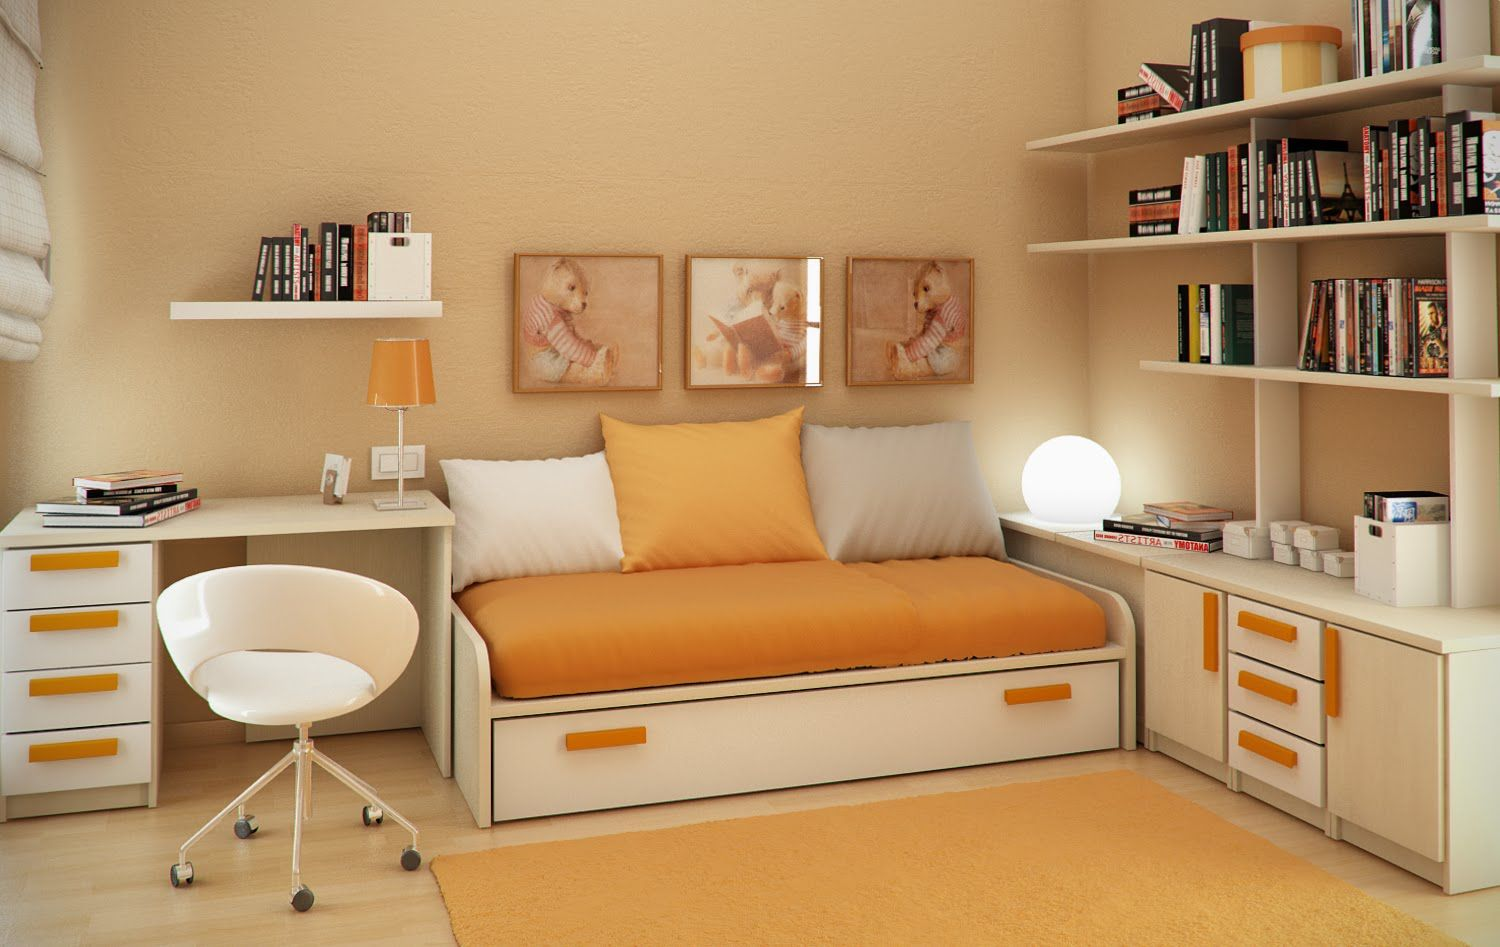 Small Floorspace Kids Rooms Small Bedroom Decor Small Bedroom Designs Small Bedroom Colours